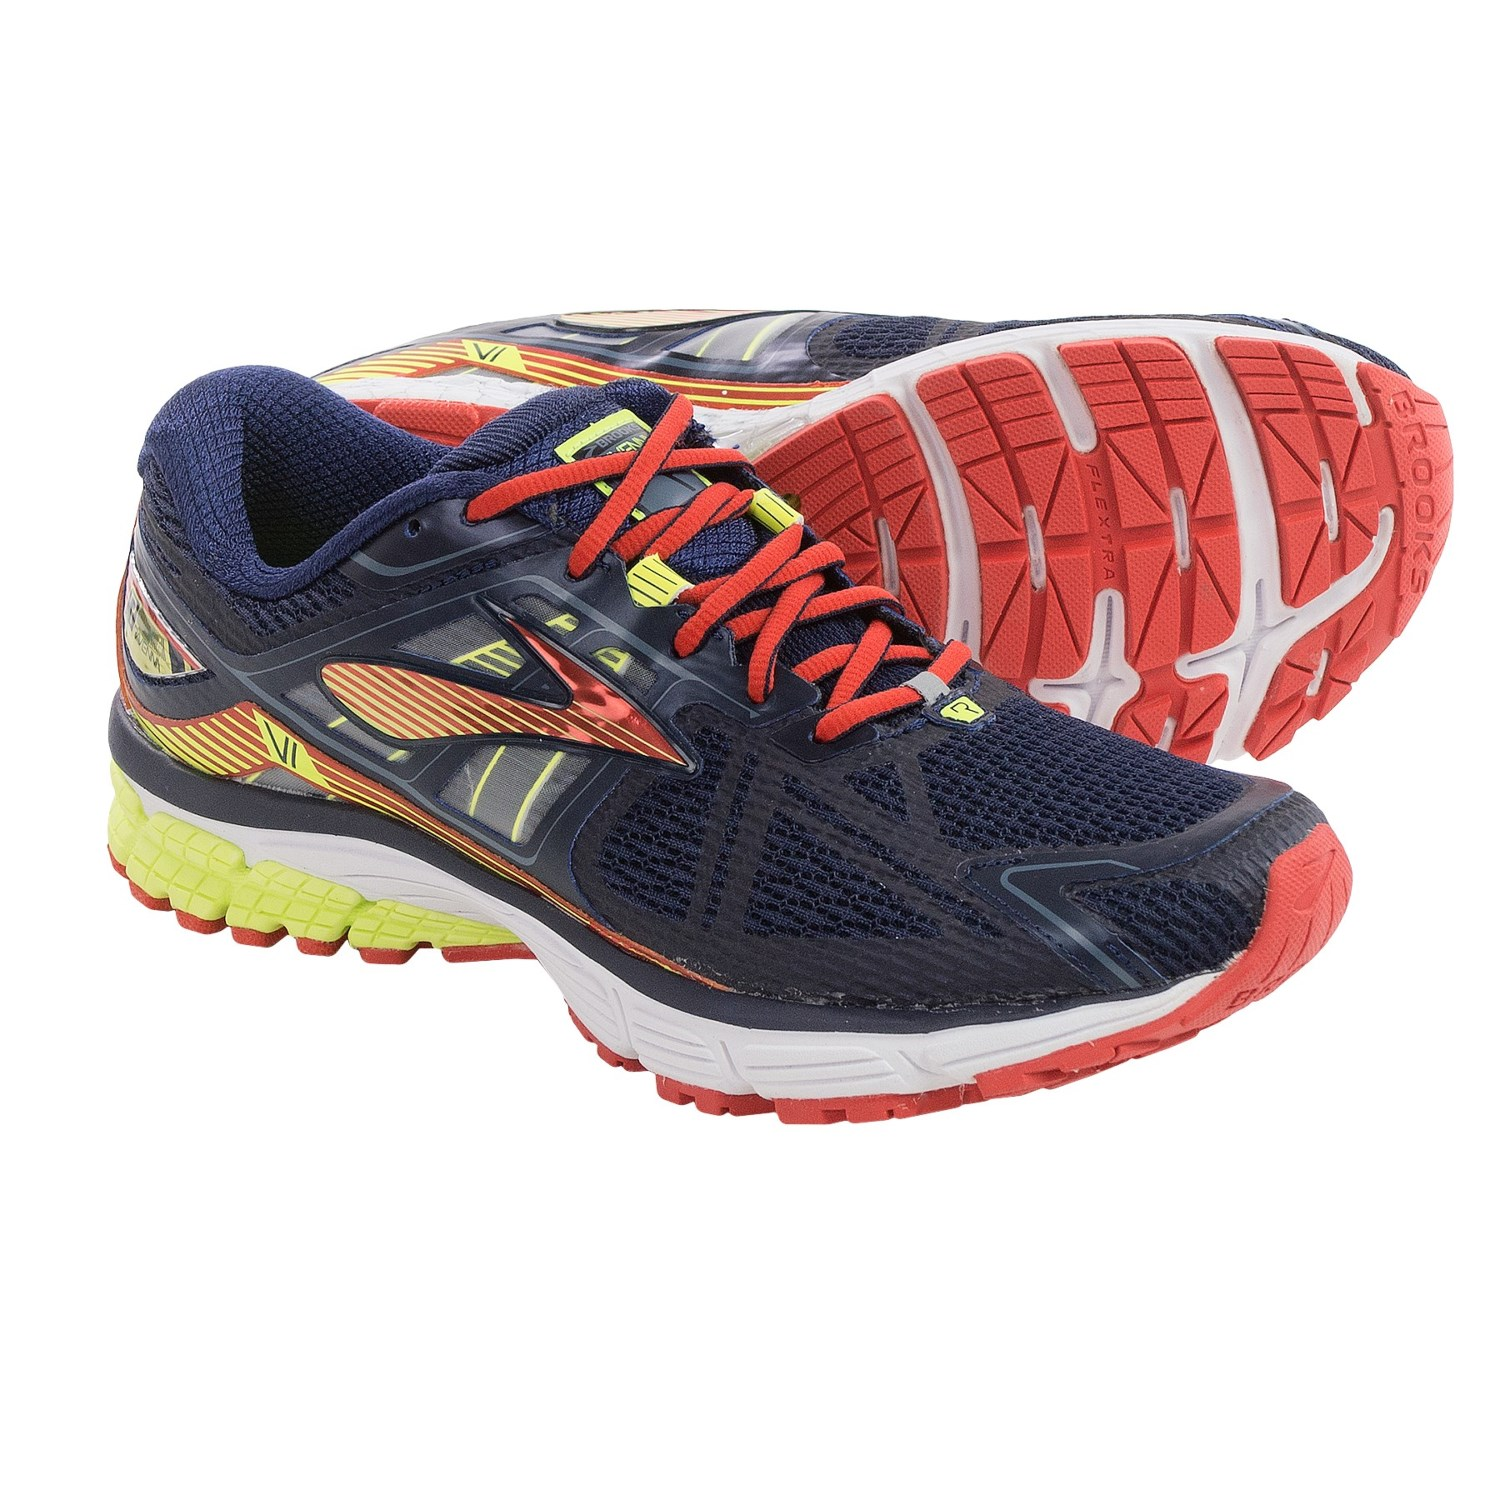 b2829de9dc352 brooks yellow running shoes for sale   OFF59% Discounts